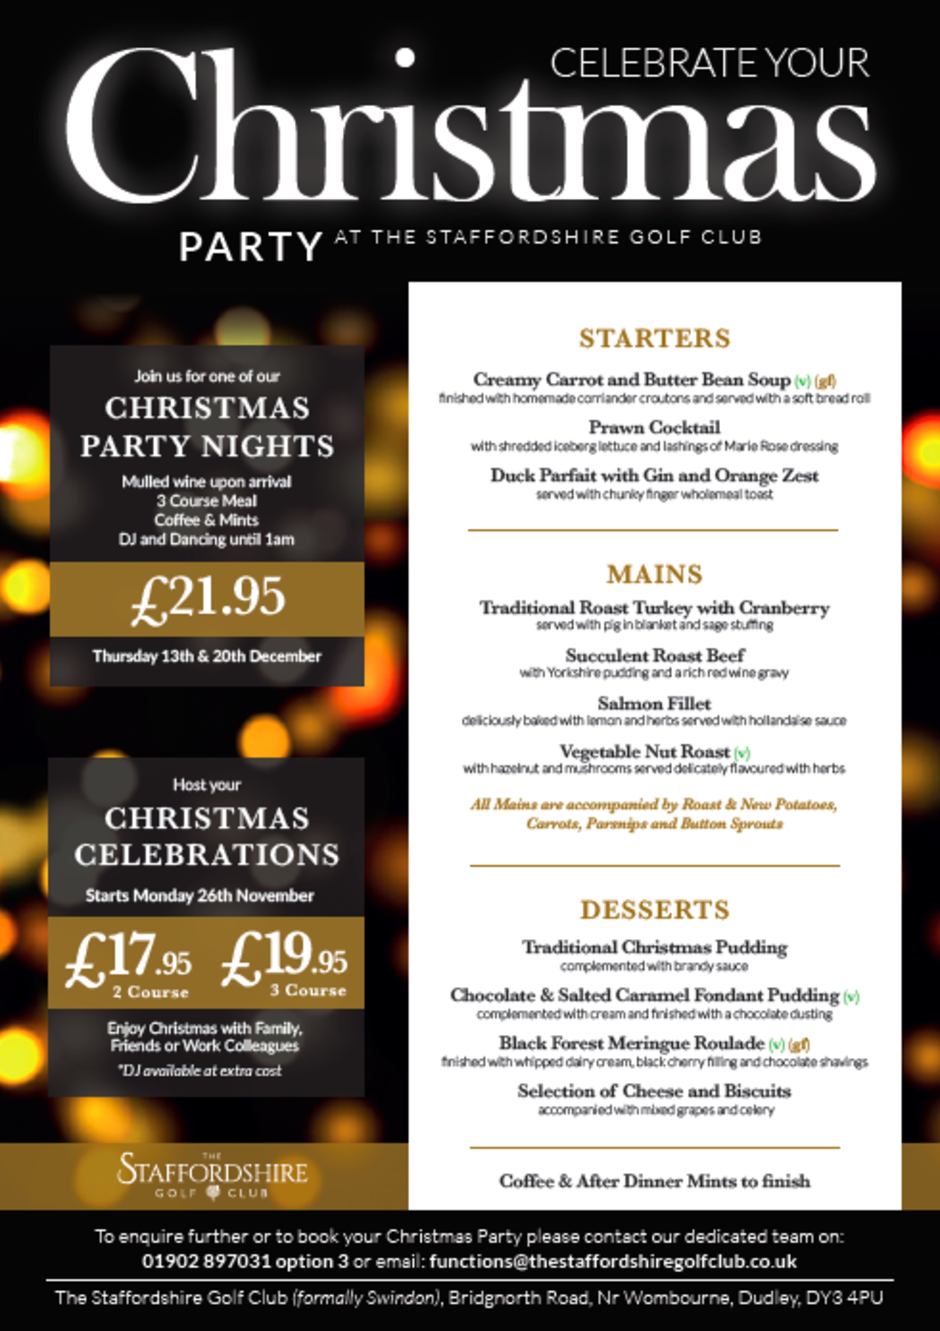 Christmas Party & Celebrations | The Staffordshire Golf Club